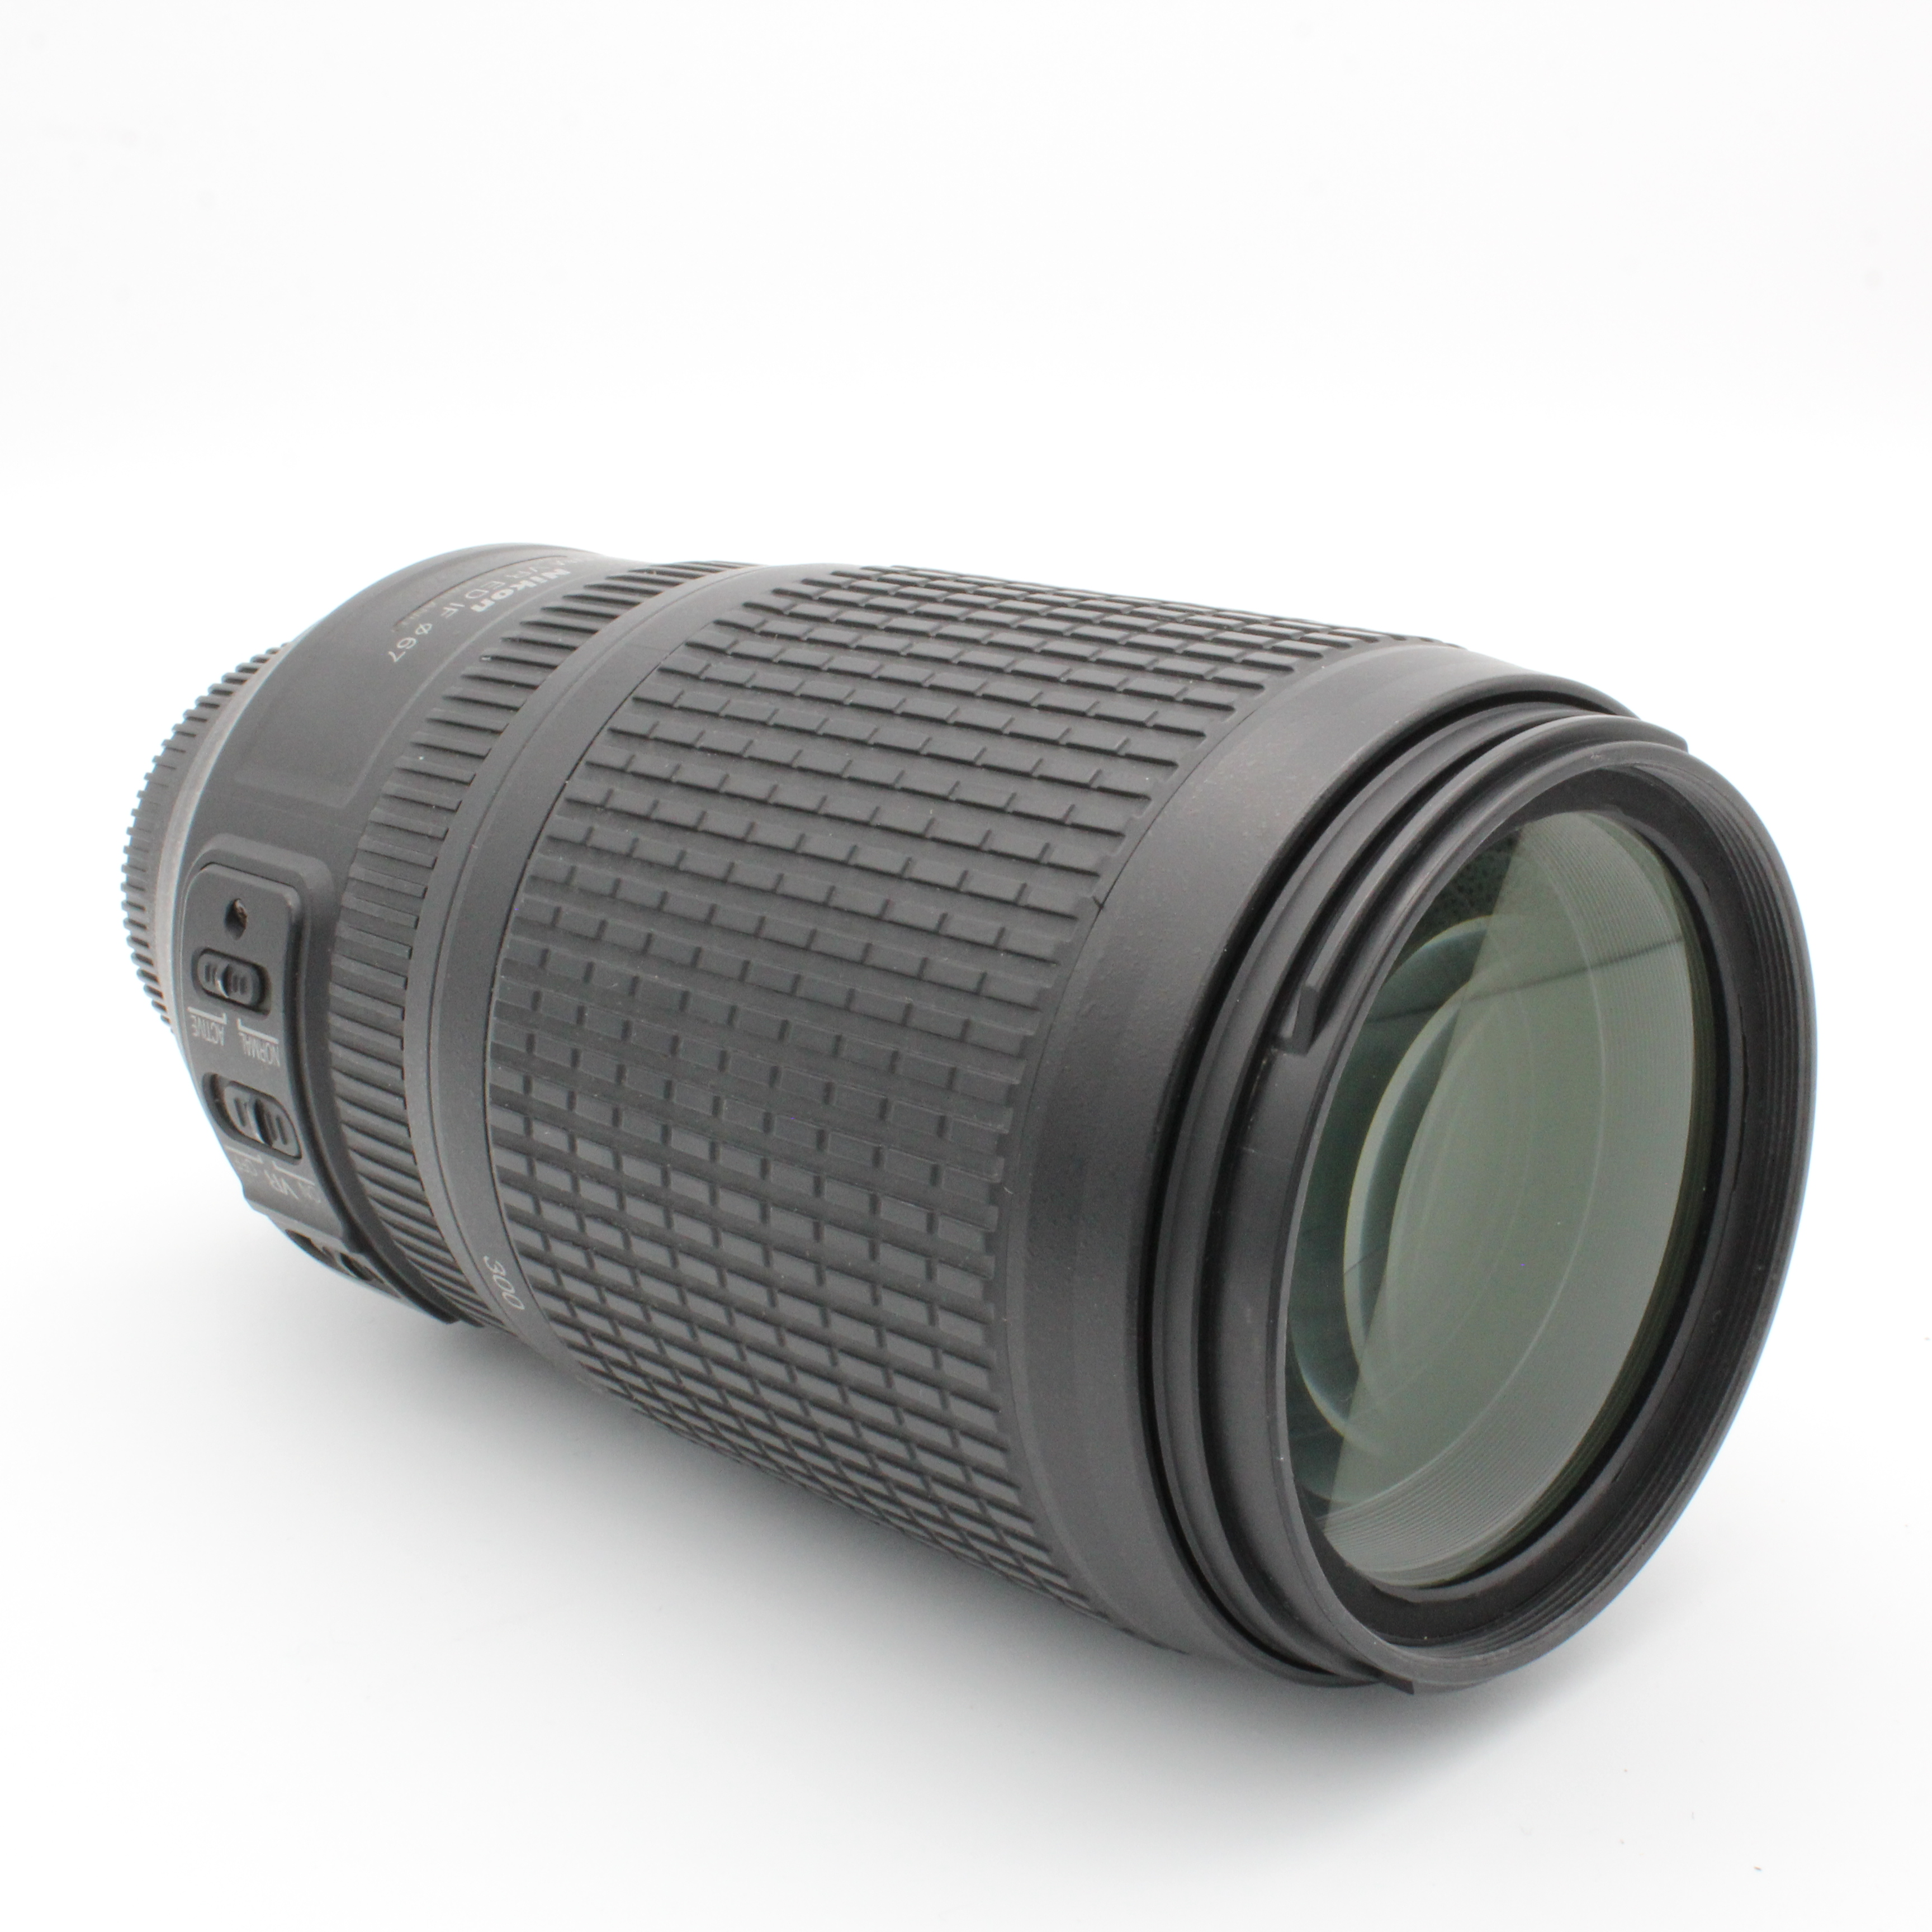 Used Nikon AF-S NIKKOR 70-300mm 4.5-5.6G IF ED VR lens